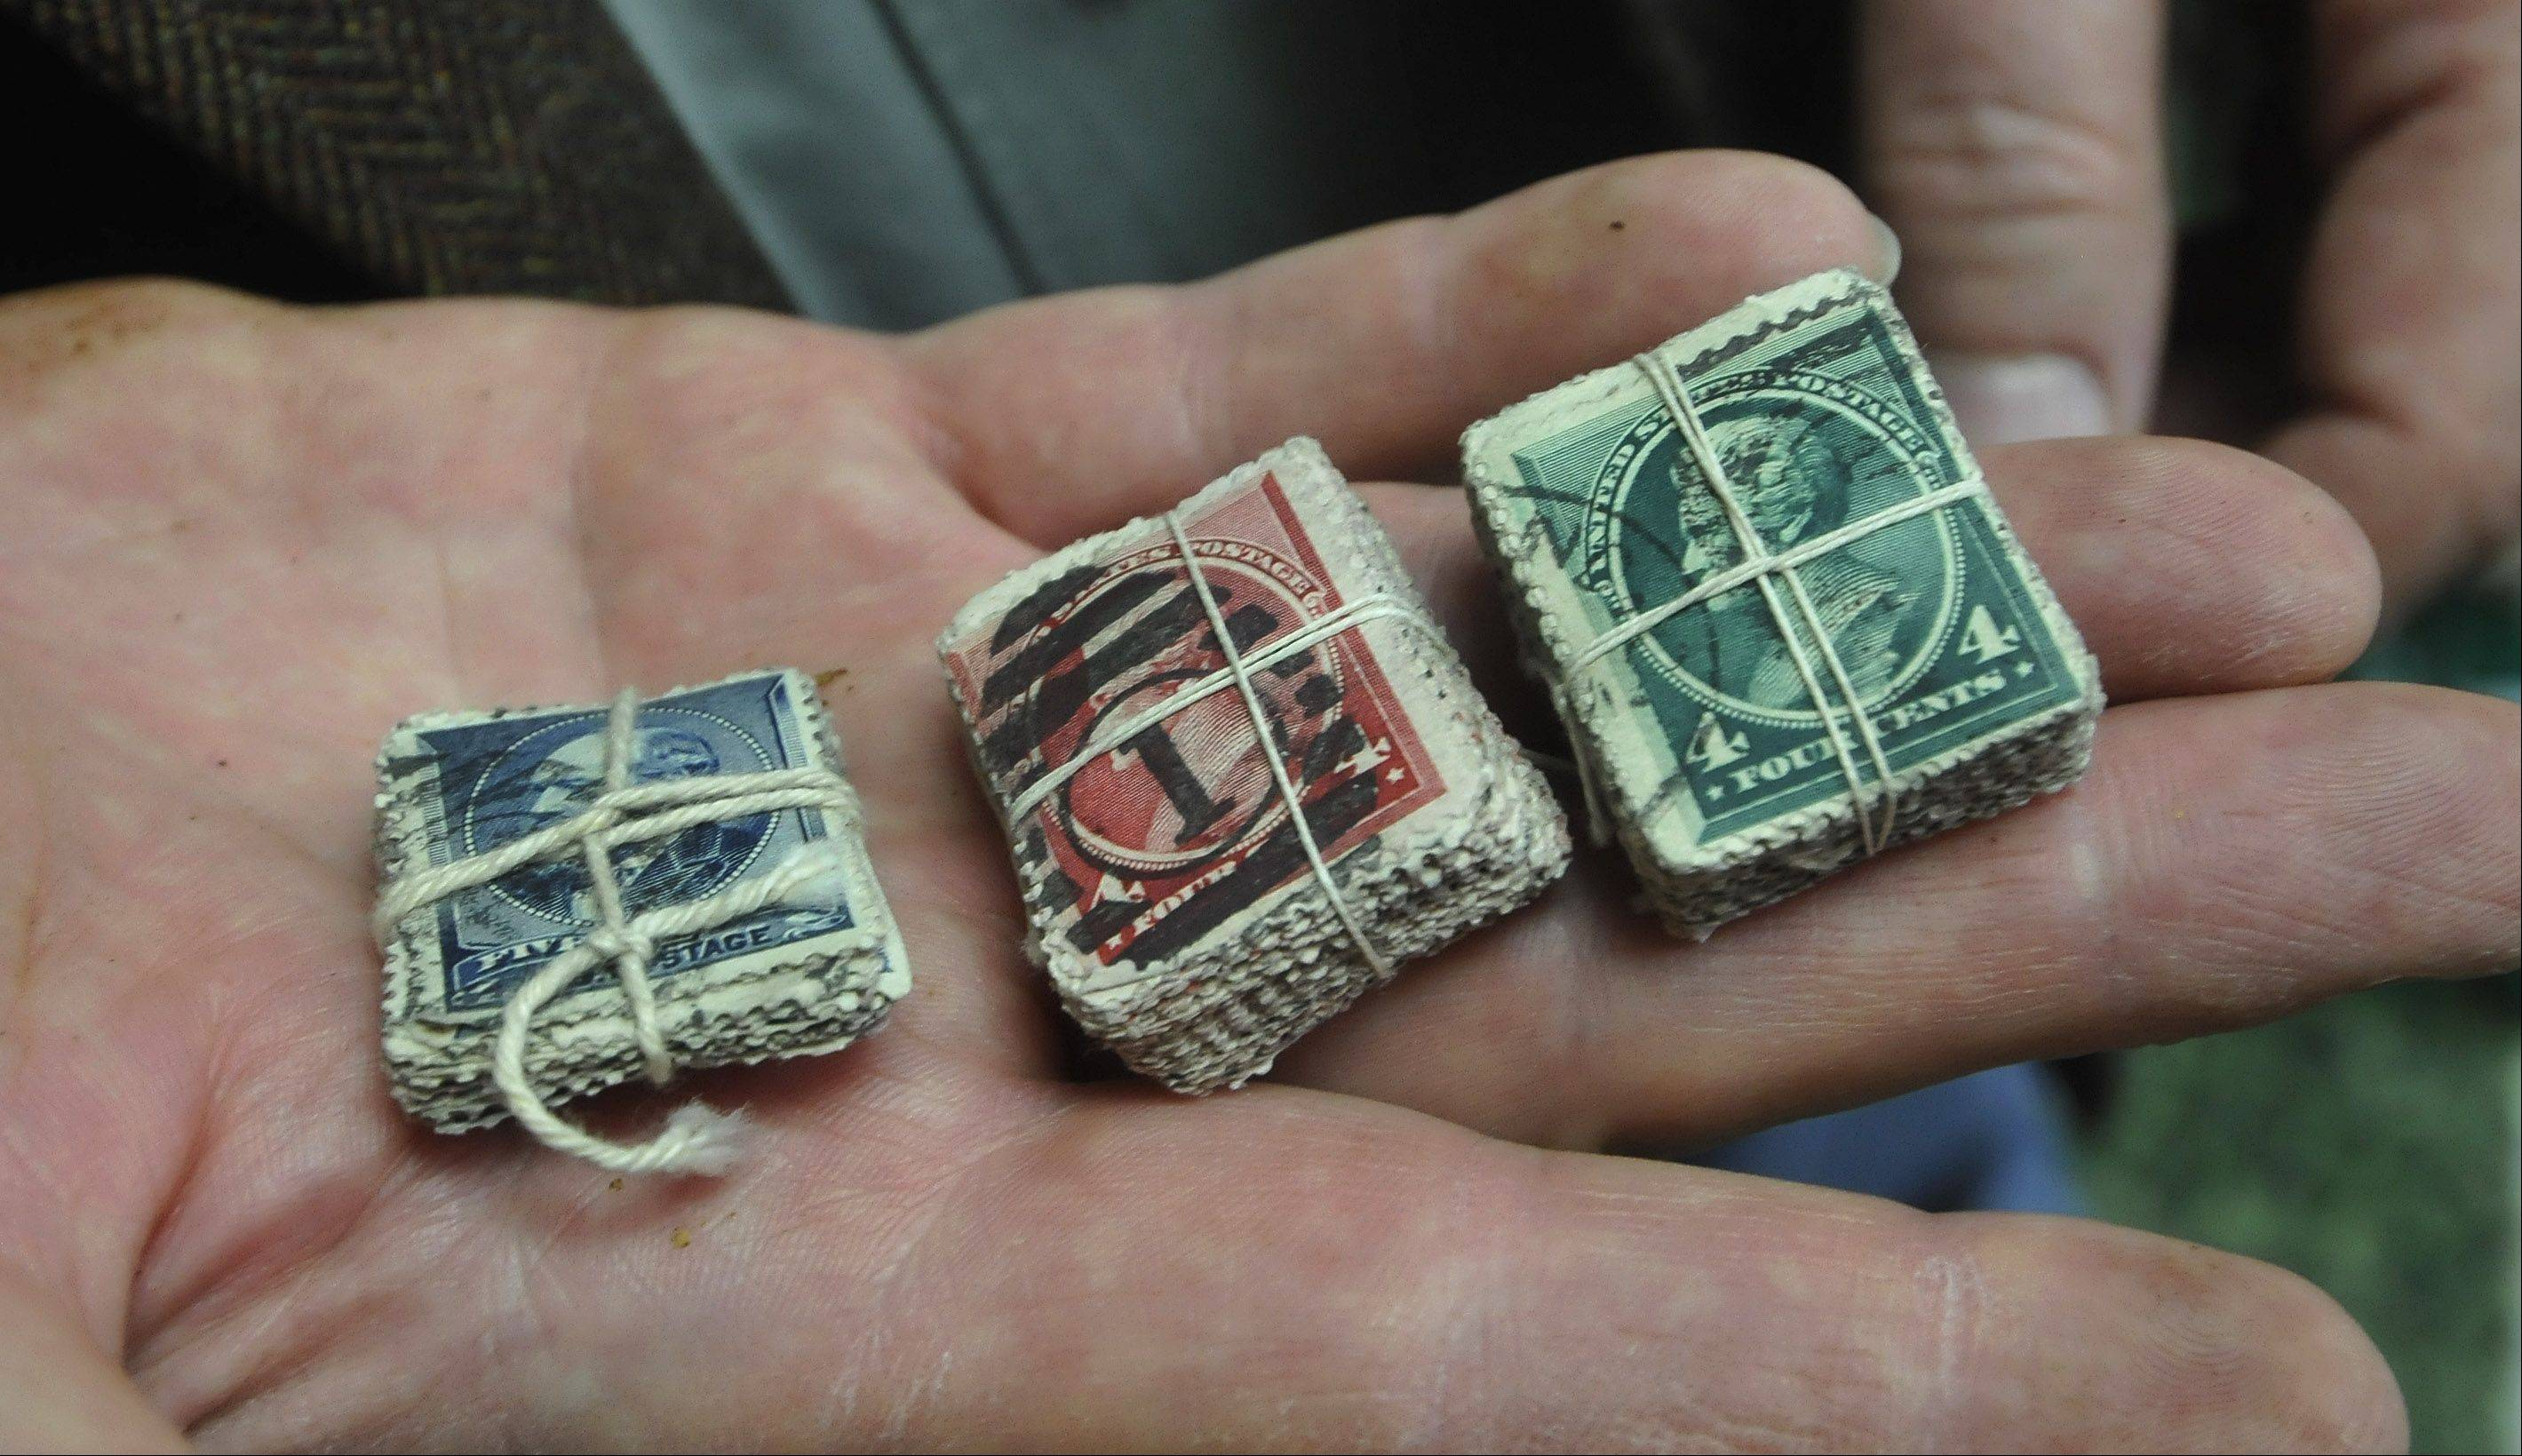 As an 8-year-old boy, Kim Kellermann got his start in the Rasdale Stamps family business by sorting and bundling these stamps from the 1870s.